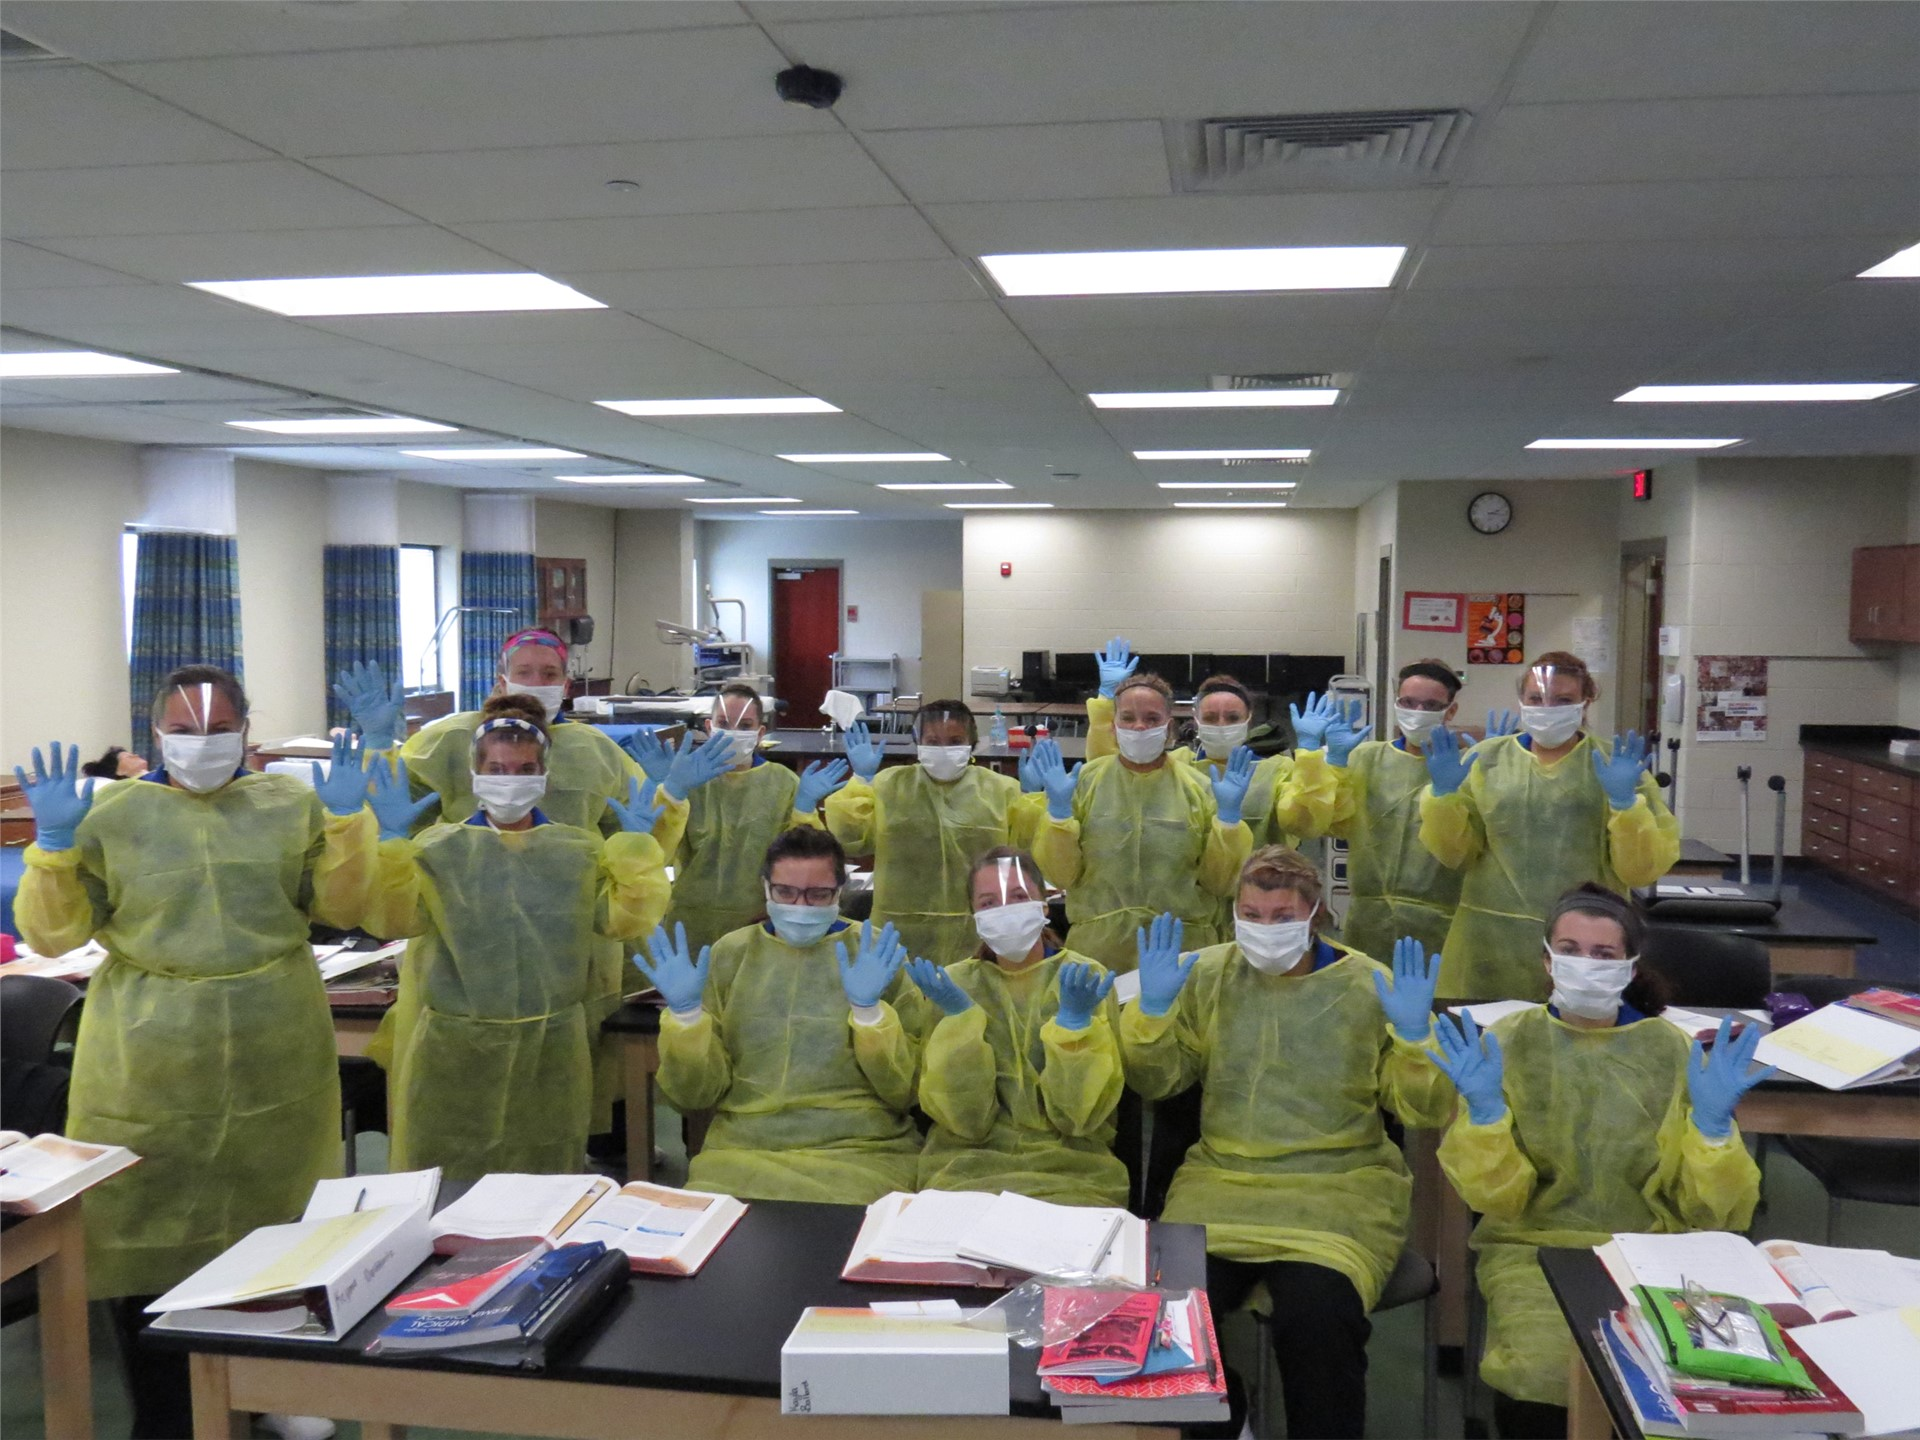 A large group of Health Technology students dressed in yellow protective gowns, blue gloves, and whi